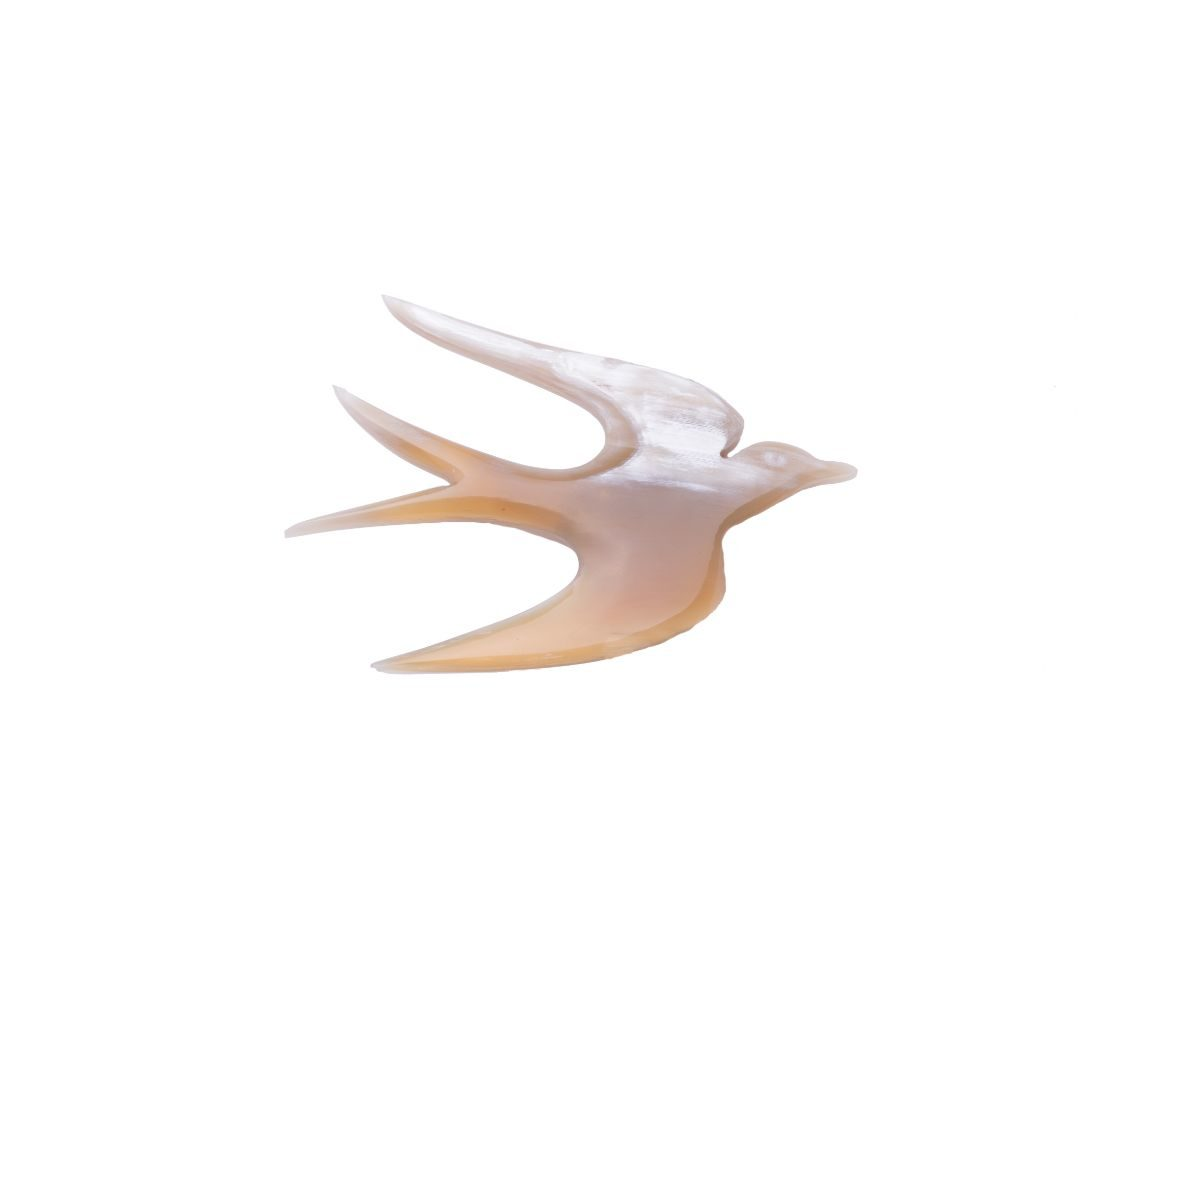 Golondrina natural horn brooch in the shape of a swallow.